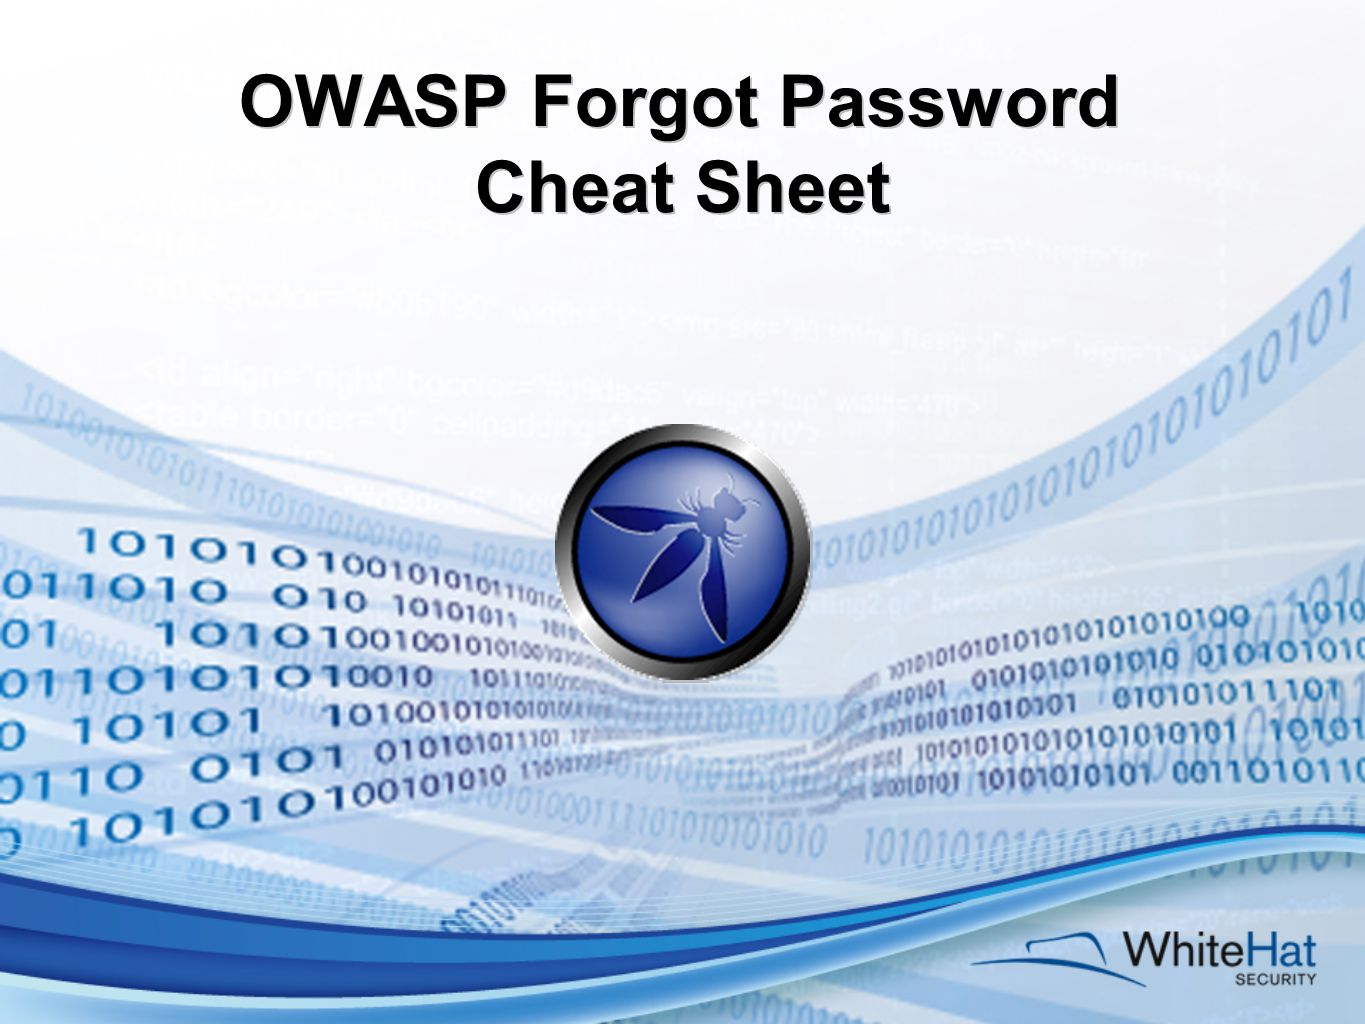 OWASP Forgot Password Cheat Sheet